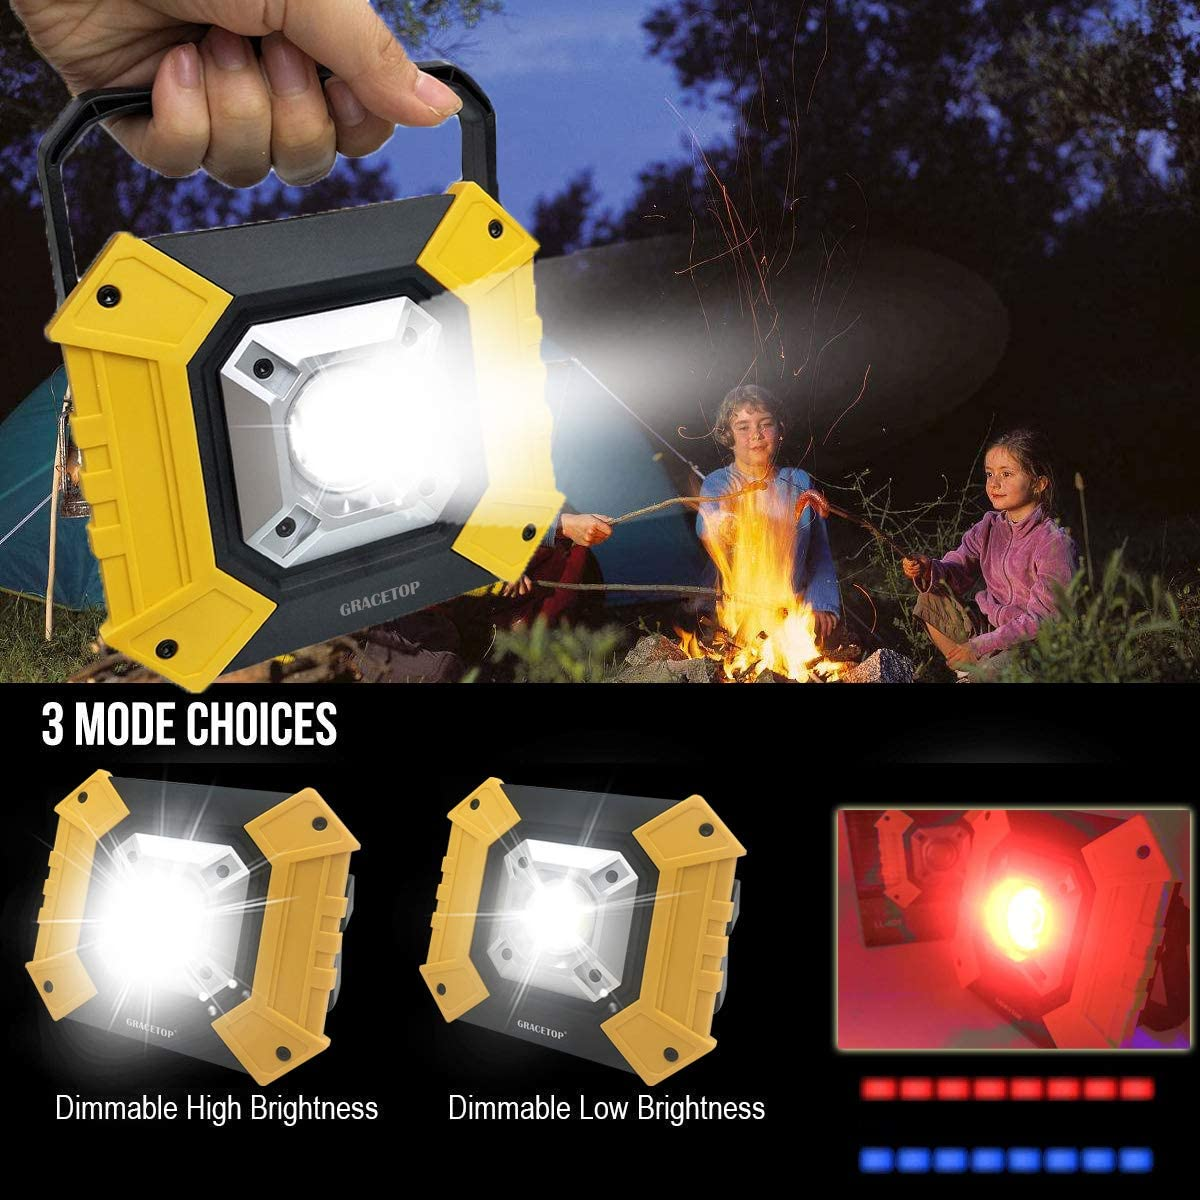 Portable Work Light Rechargeable 20W Built-in 6000mAh Battery Waterproof Flood Light for Outdoor Lighting,Camping,Hiking,Fishing,Car Repairing,Construction Site